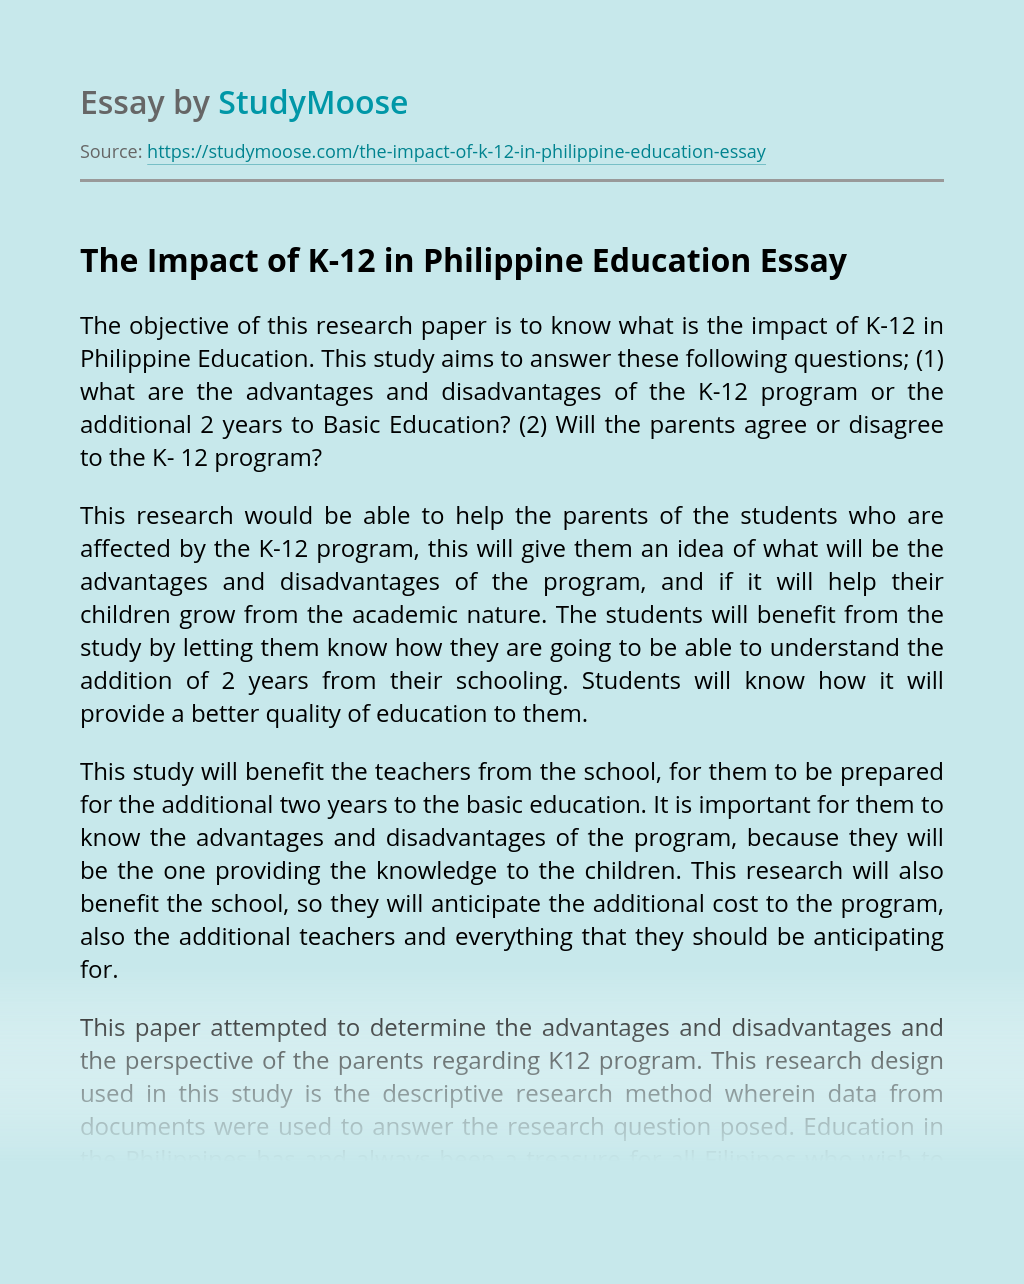 The Impact of K-12 in Philippine Education